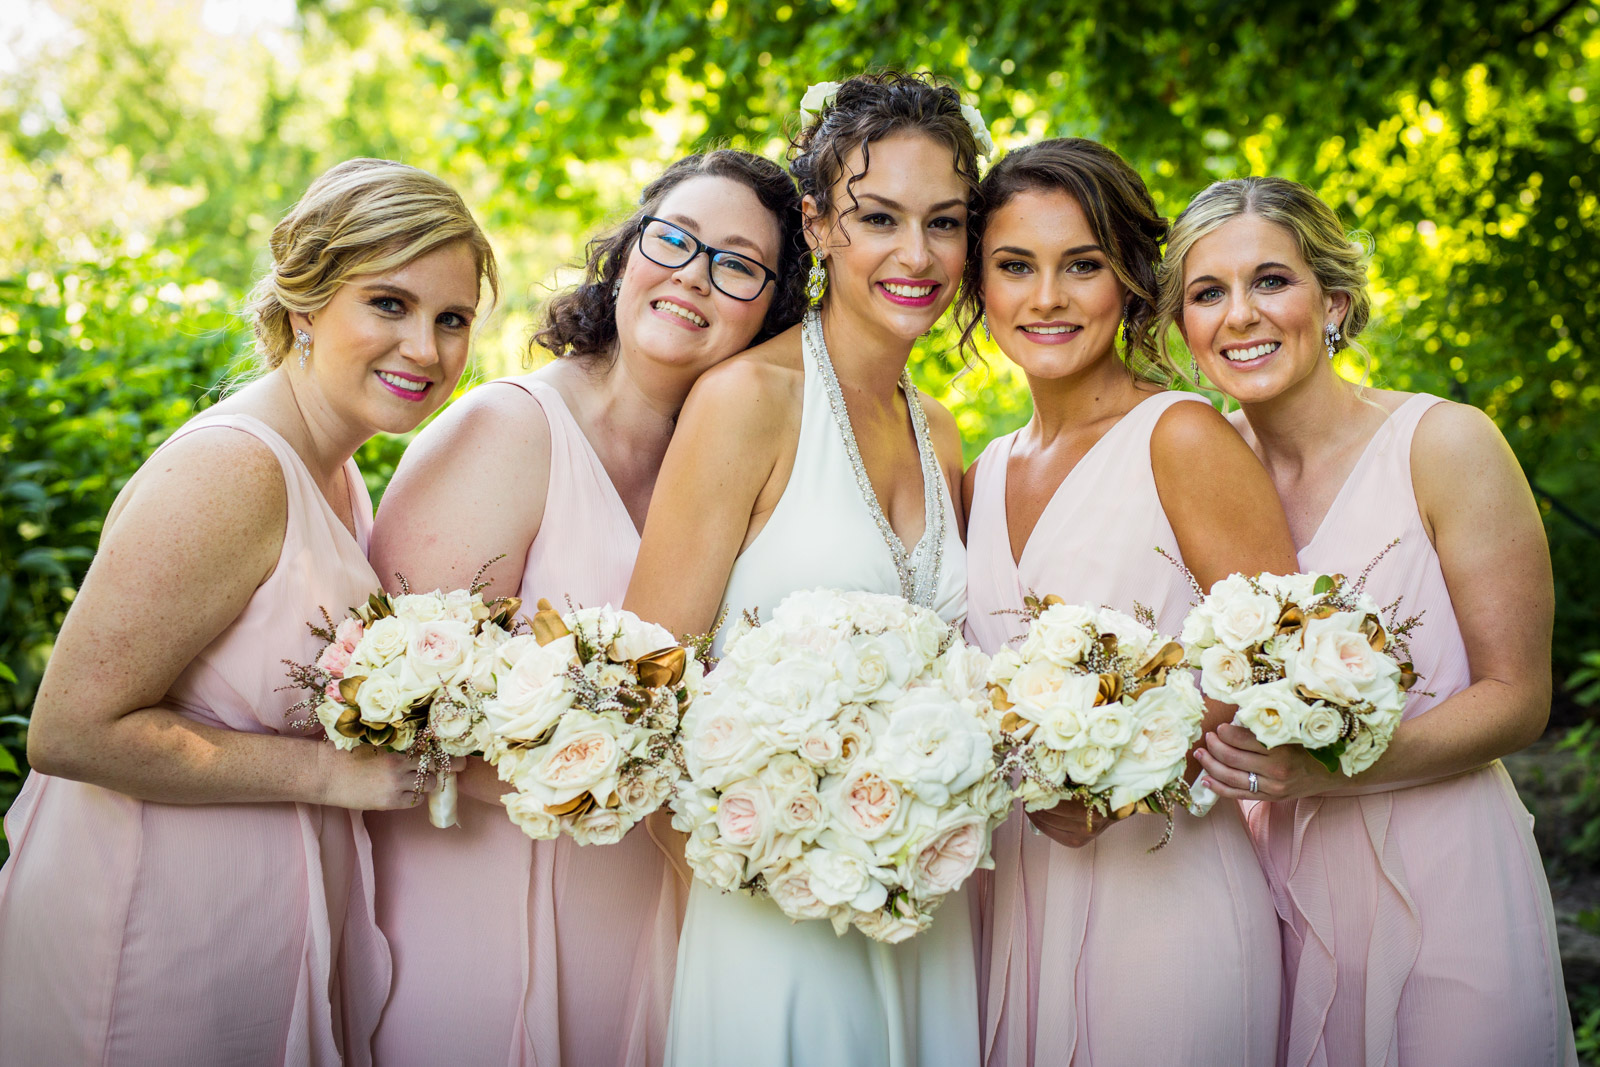 Bride Bridesmaids Wedding Party Photo Lush Greenery